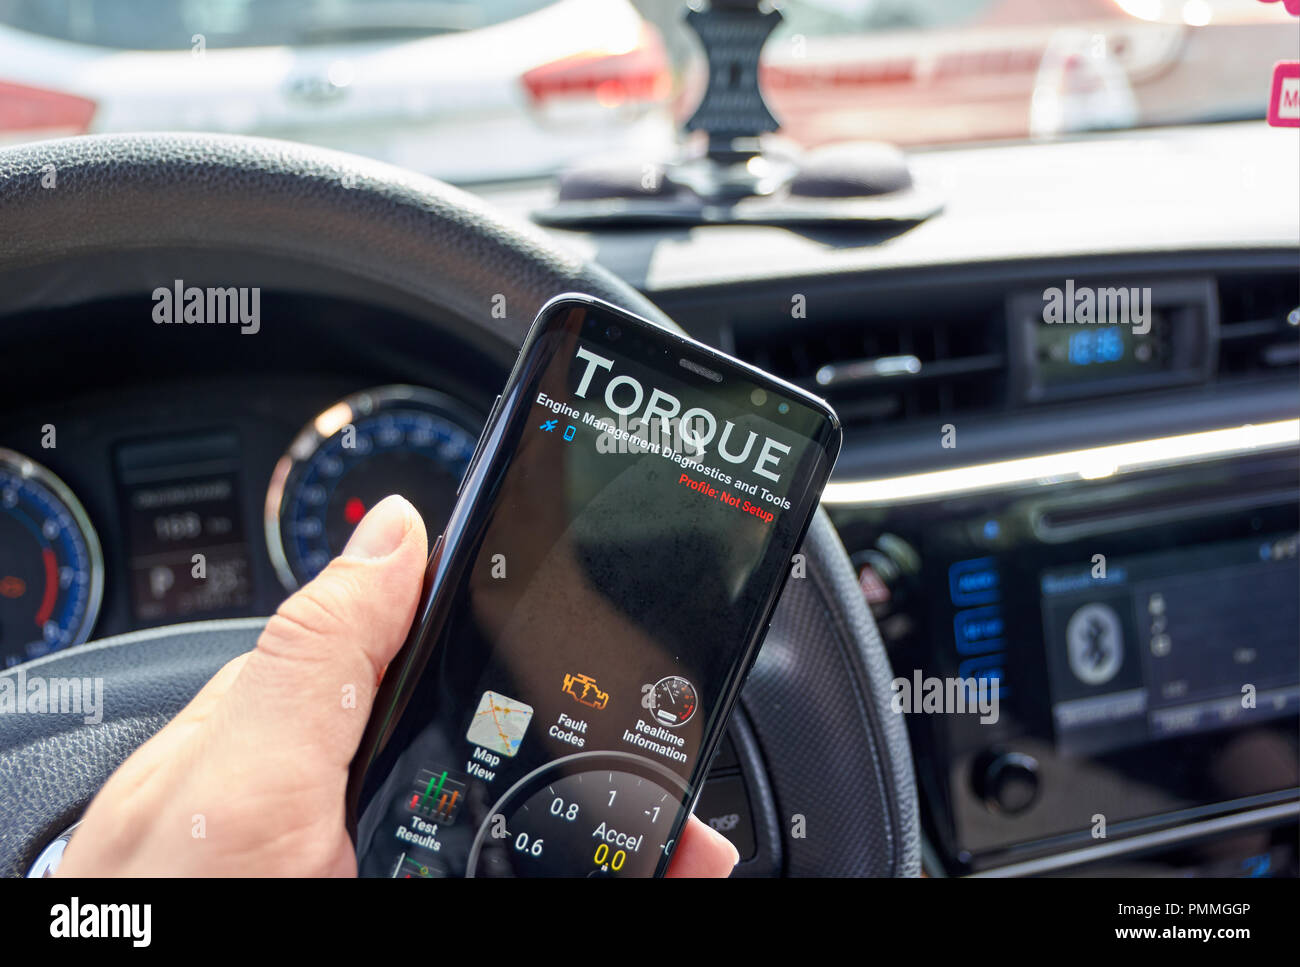 MONTREAL, CANADA - AUGUST 10, 2018: Torque PRO android app